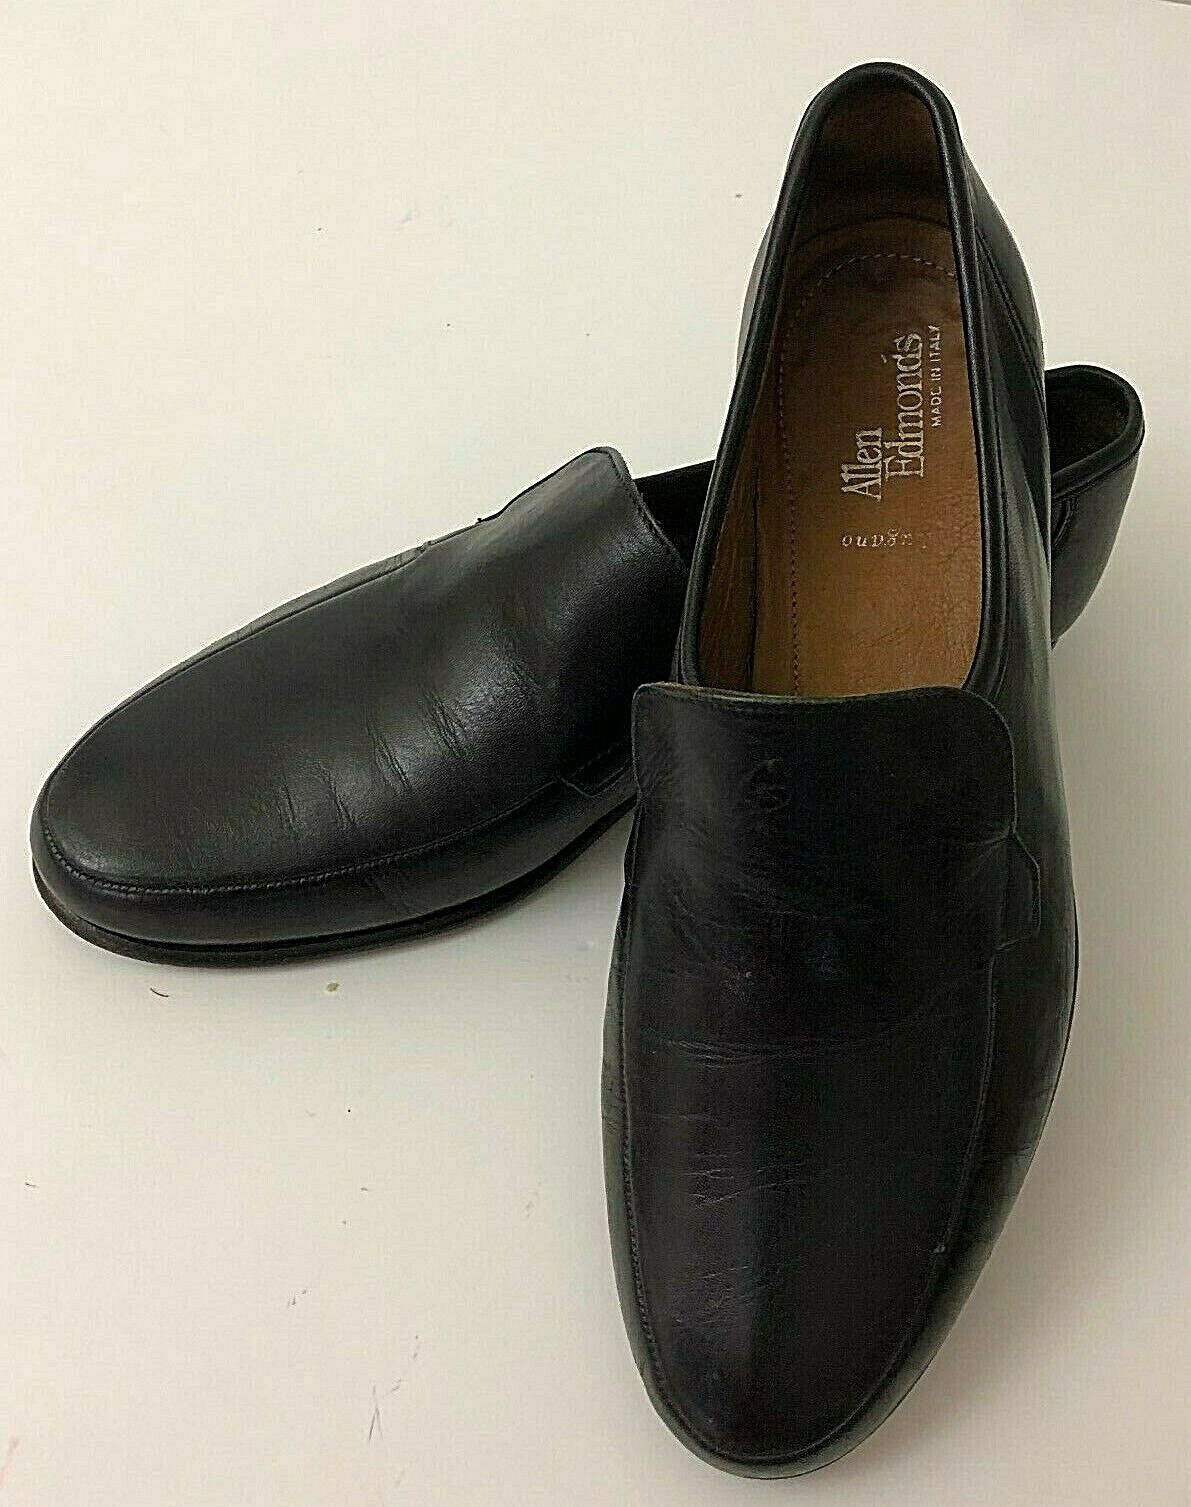 Allen Edmonds Lugano 49910 Loafers US Mens Size 9 D Black Leather Made In